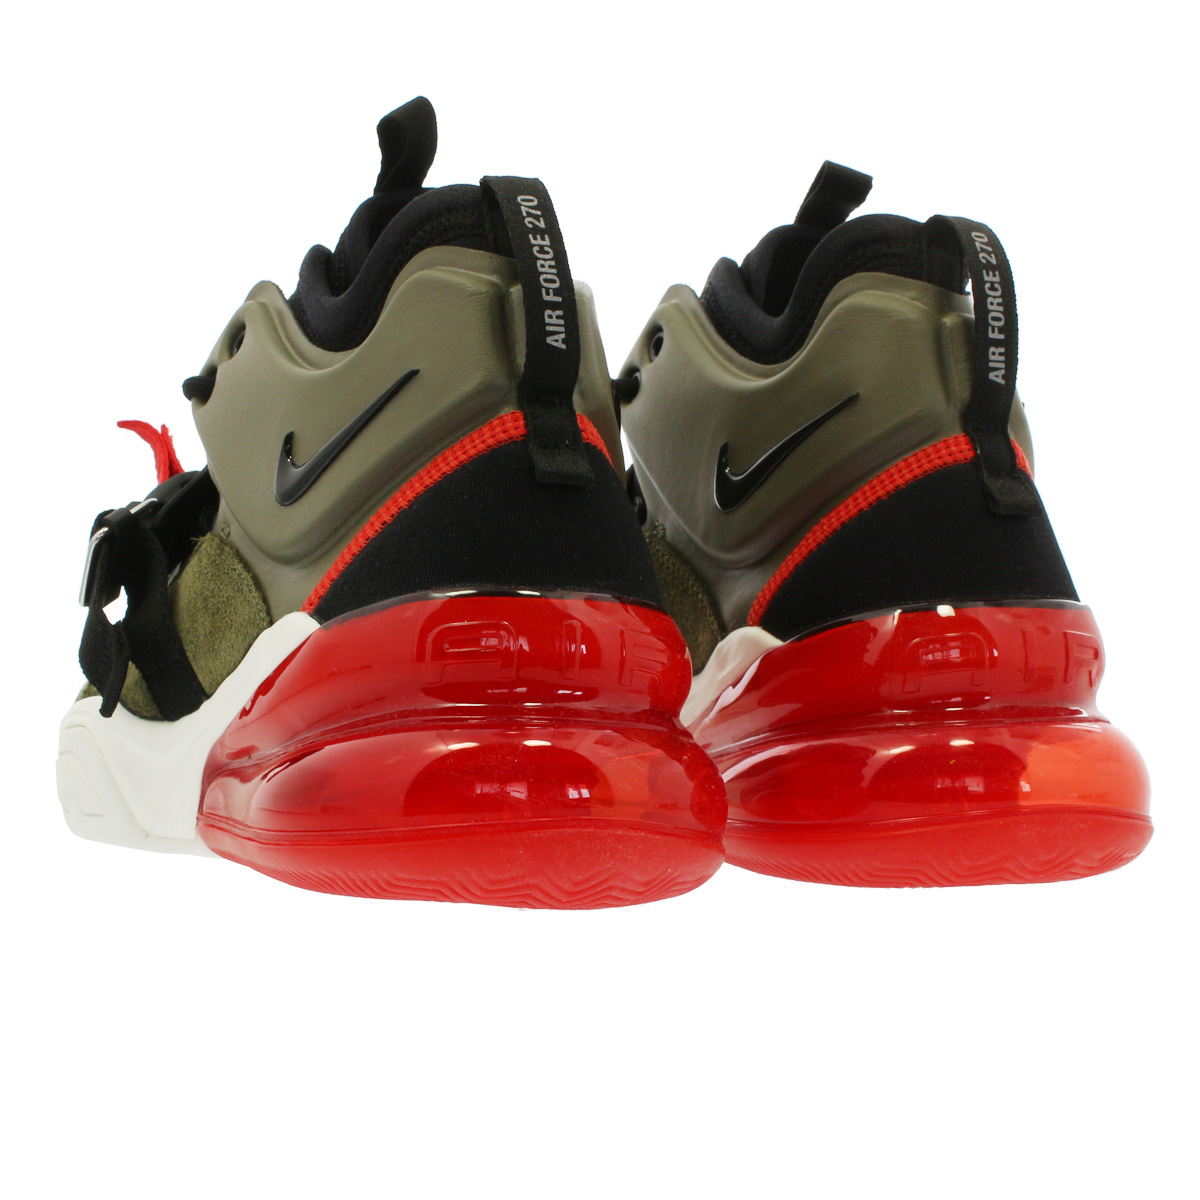 5f2158179 ... NIKE AIR FORCE 270 Nike air force 270 MEDIUM OLIVE/BLACK/CHALLENGE RED/  ...